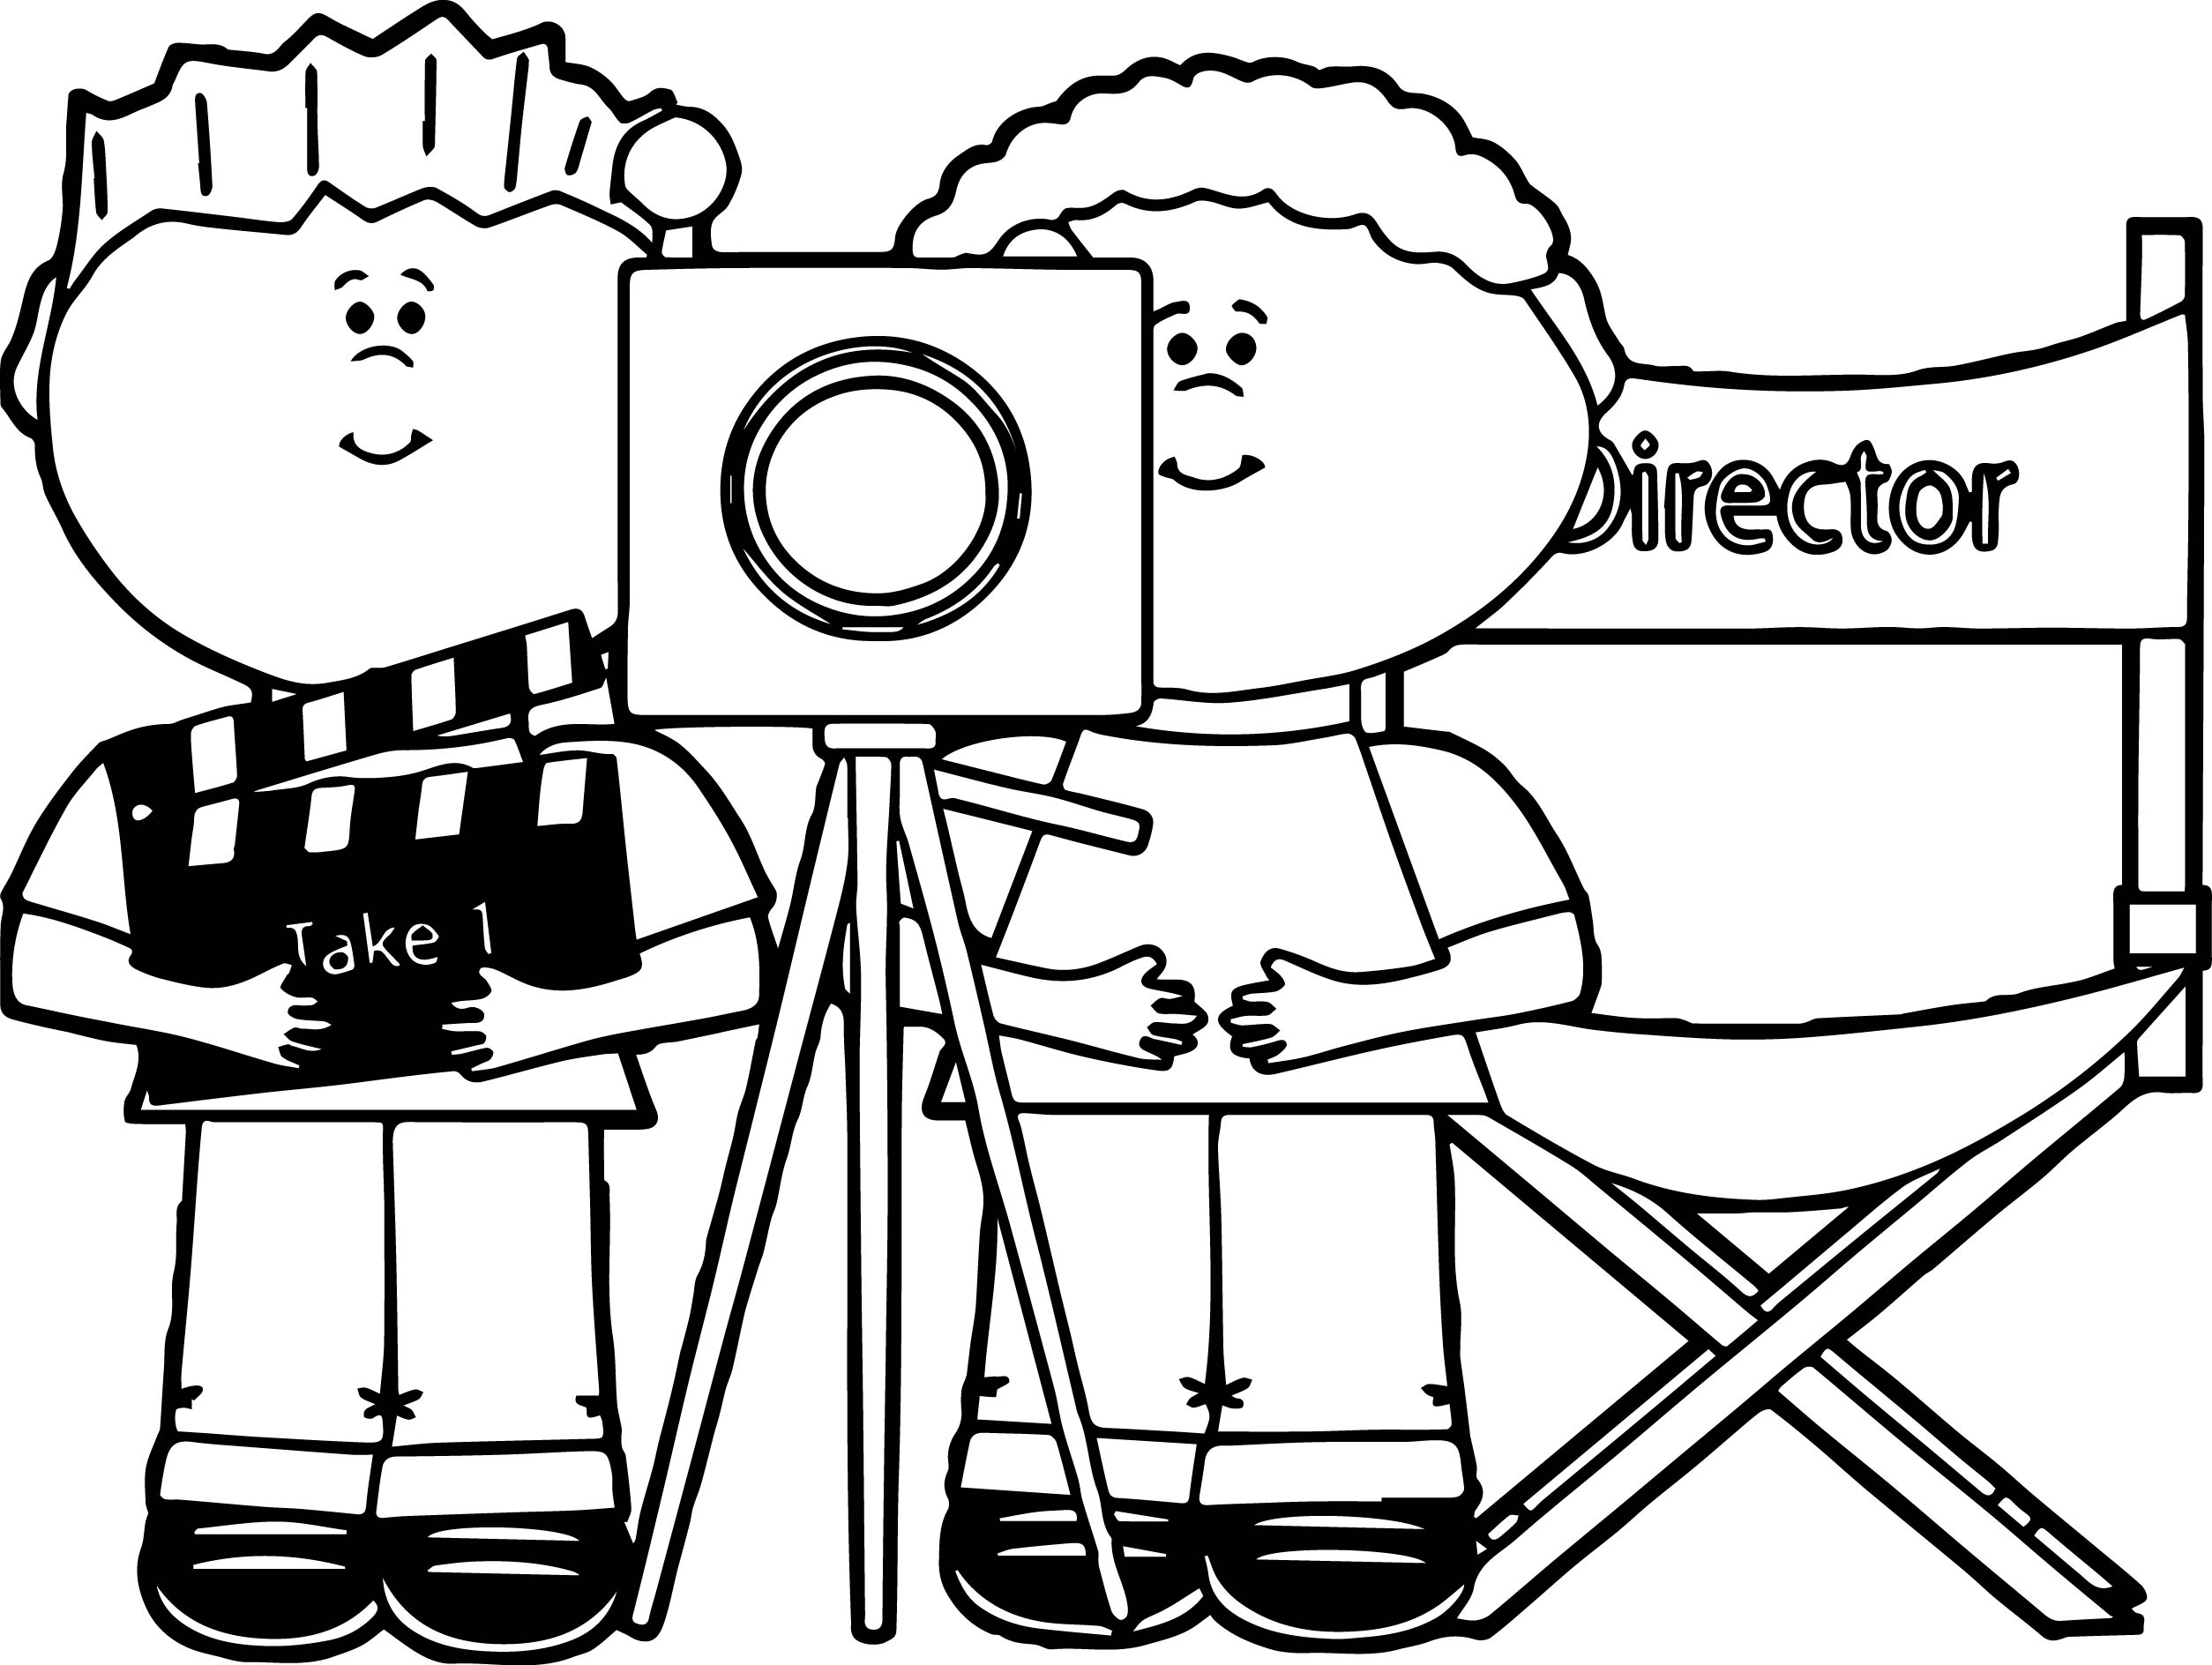 Kids Directing Behind Movie Camera Kids Directing Kids Coloring